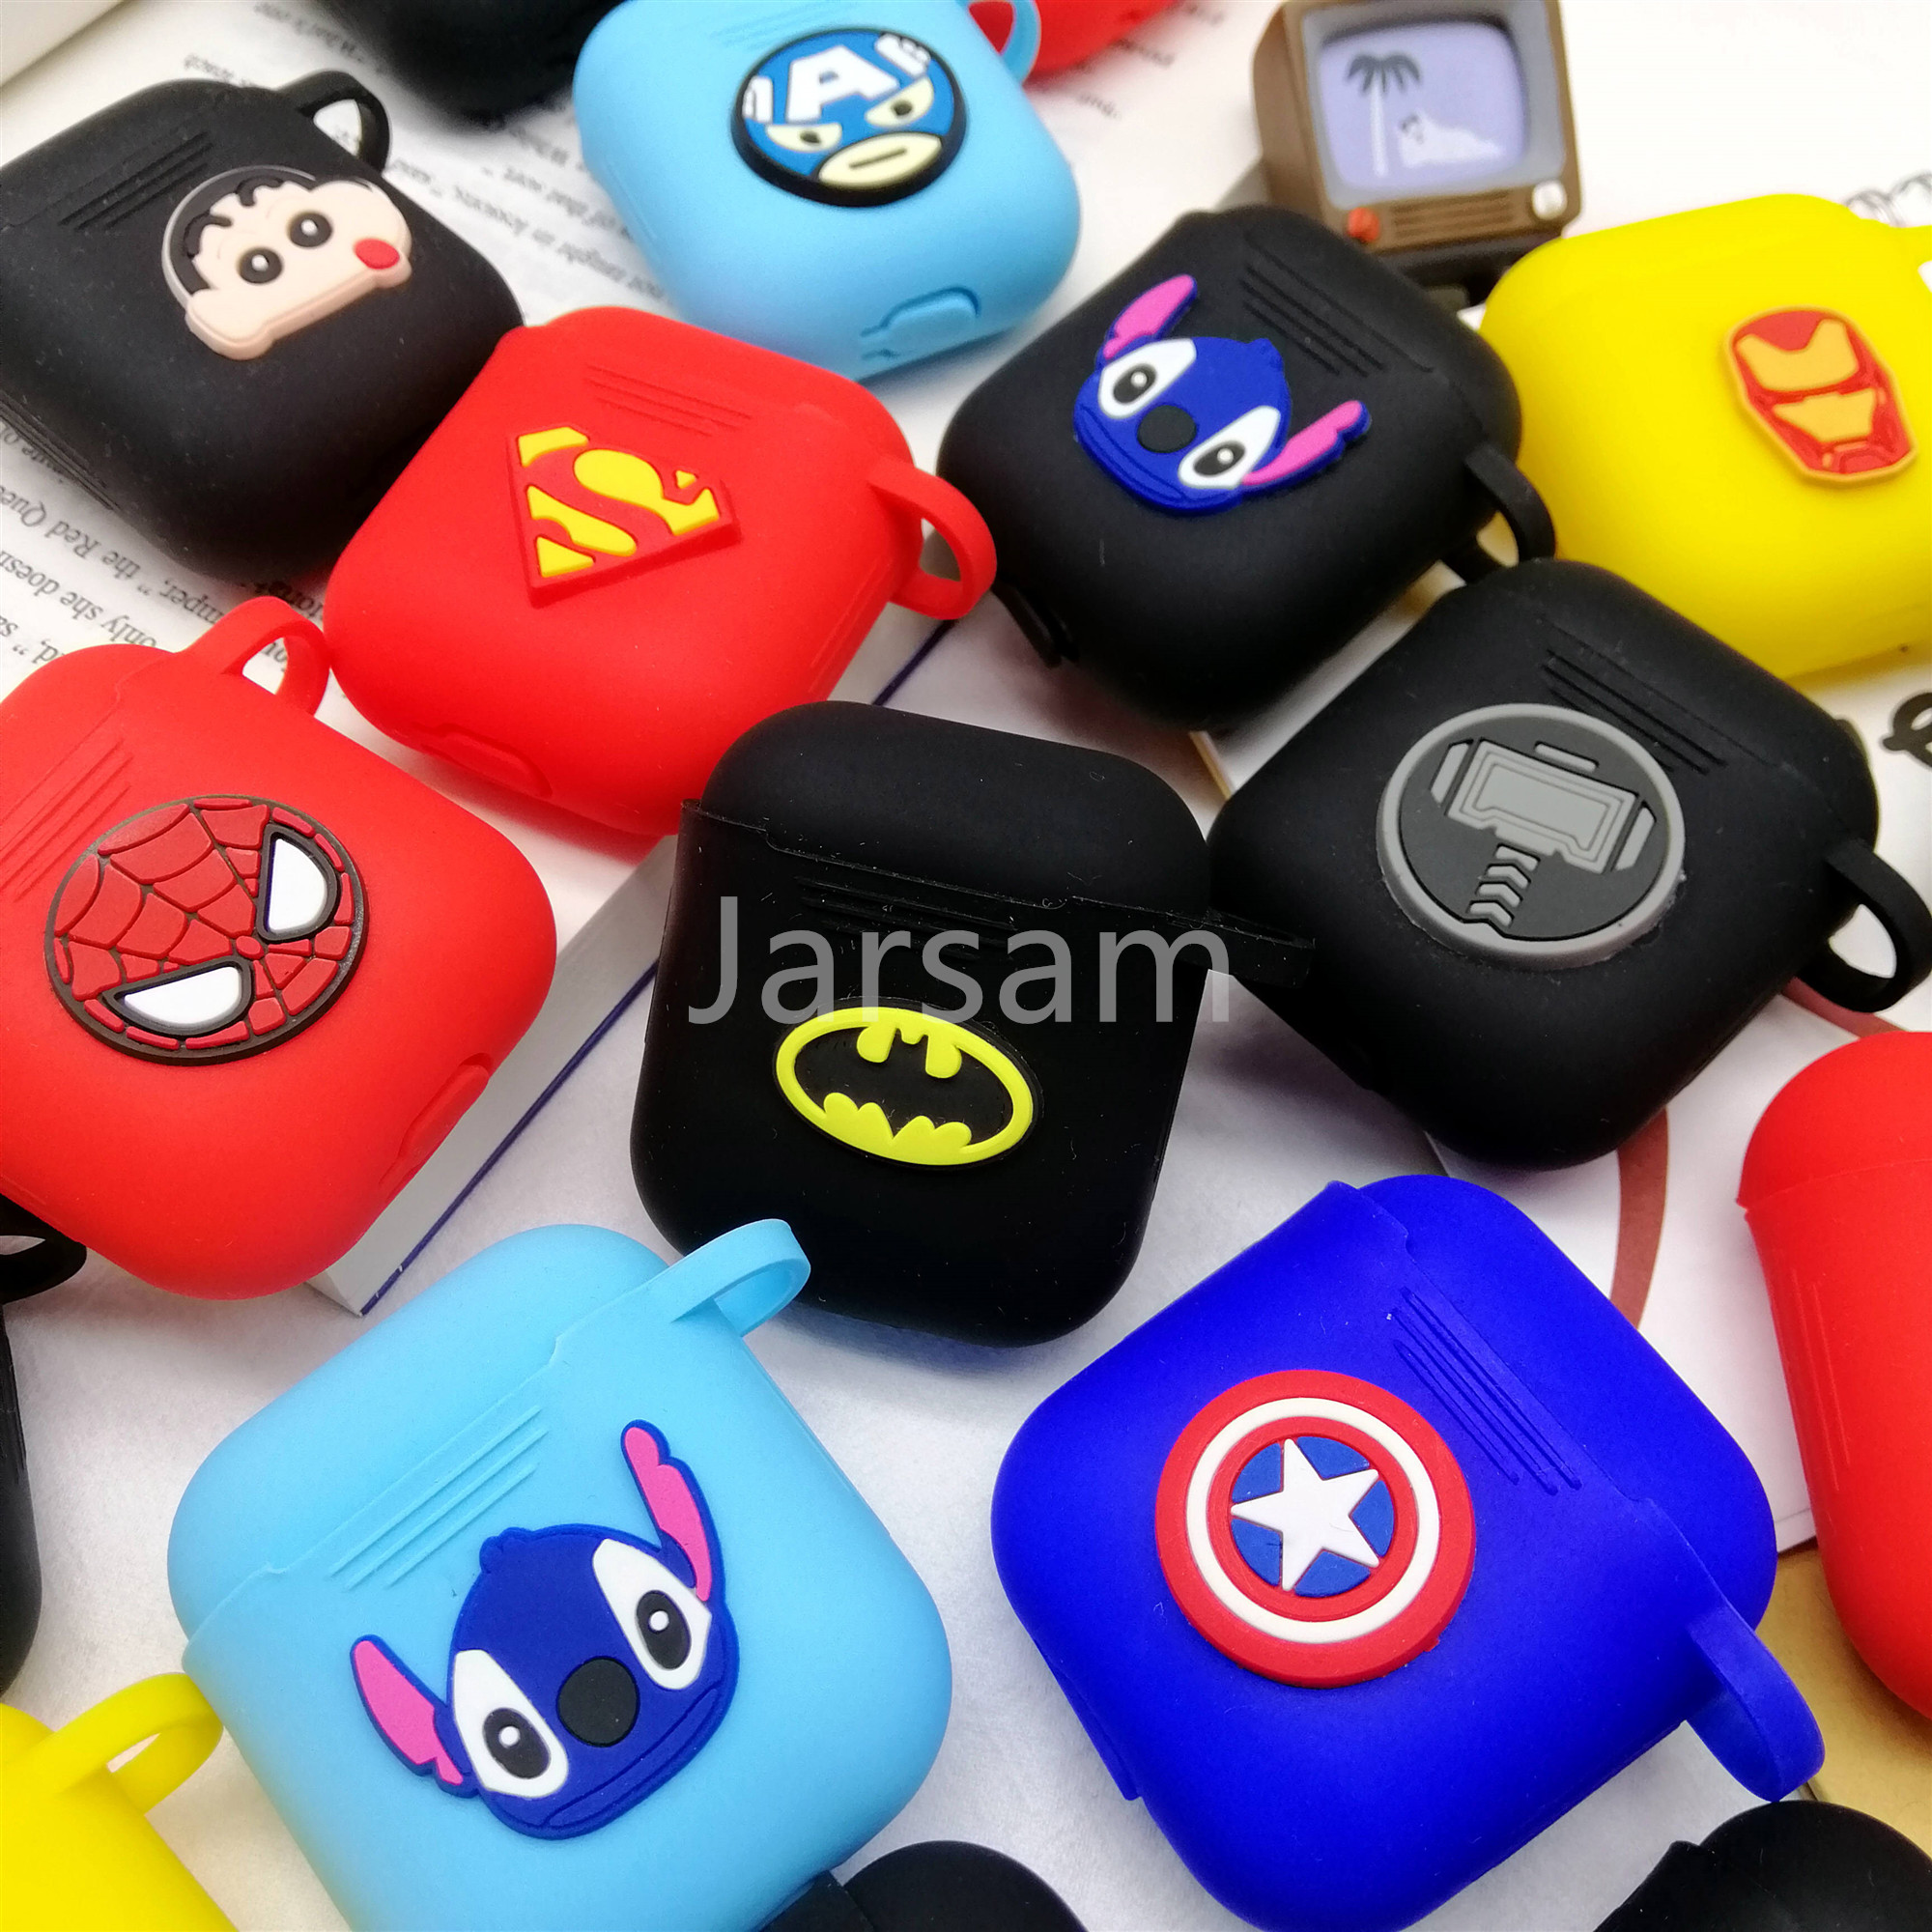 Cartoon Wireless Earphone Case For Apple AirPods 2 Silicone Charging Headphones Cases For Airpods Protective Cover